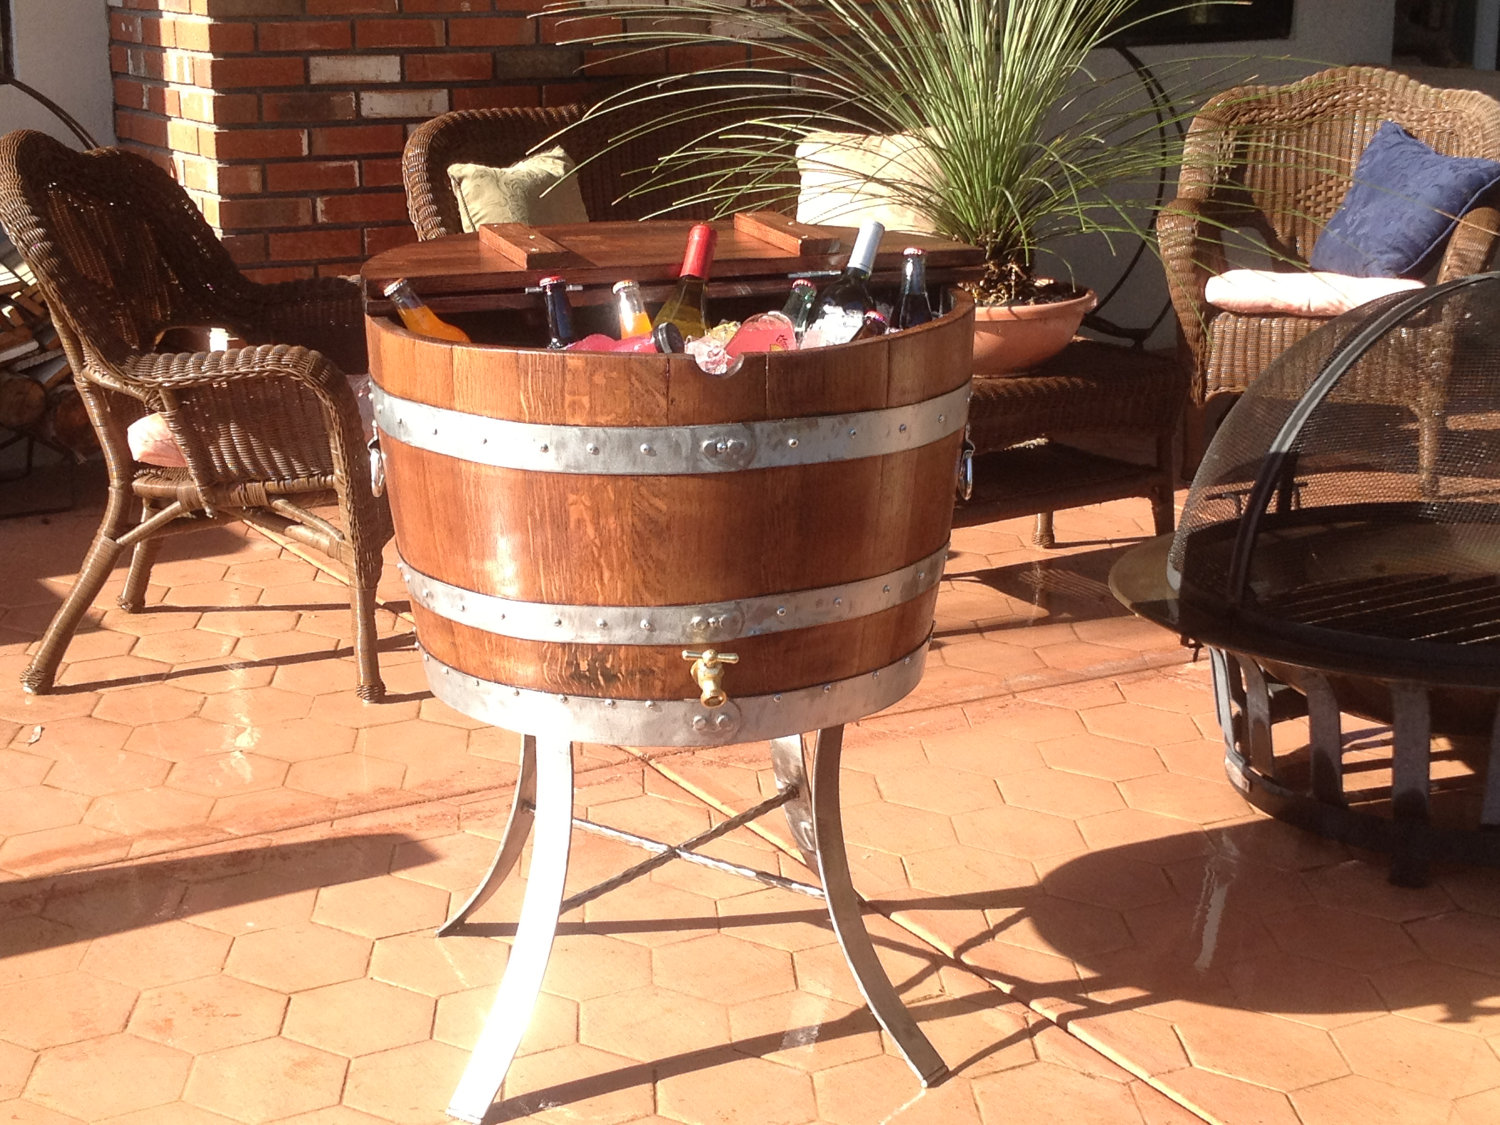 23 Genius Ideas To Repurpose Old Wine Barrels Into Cool